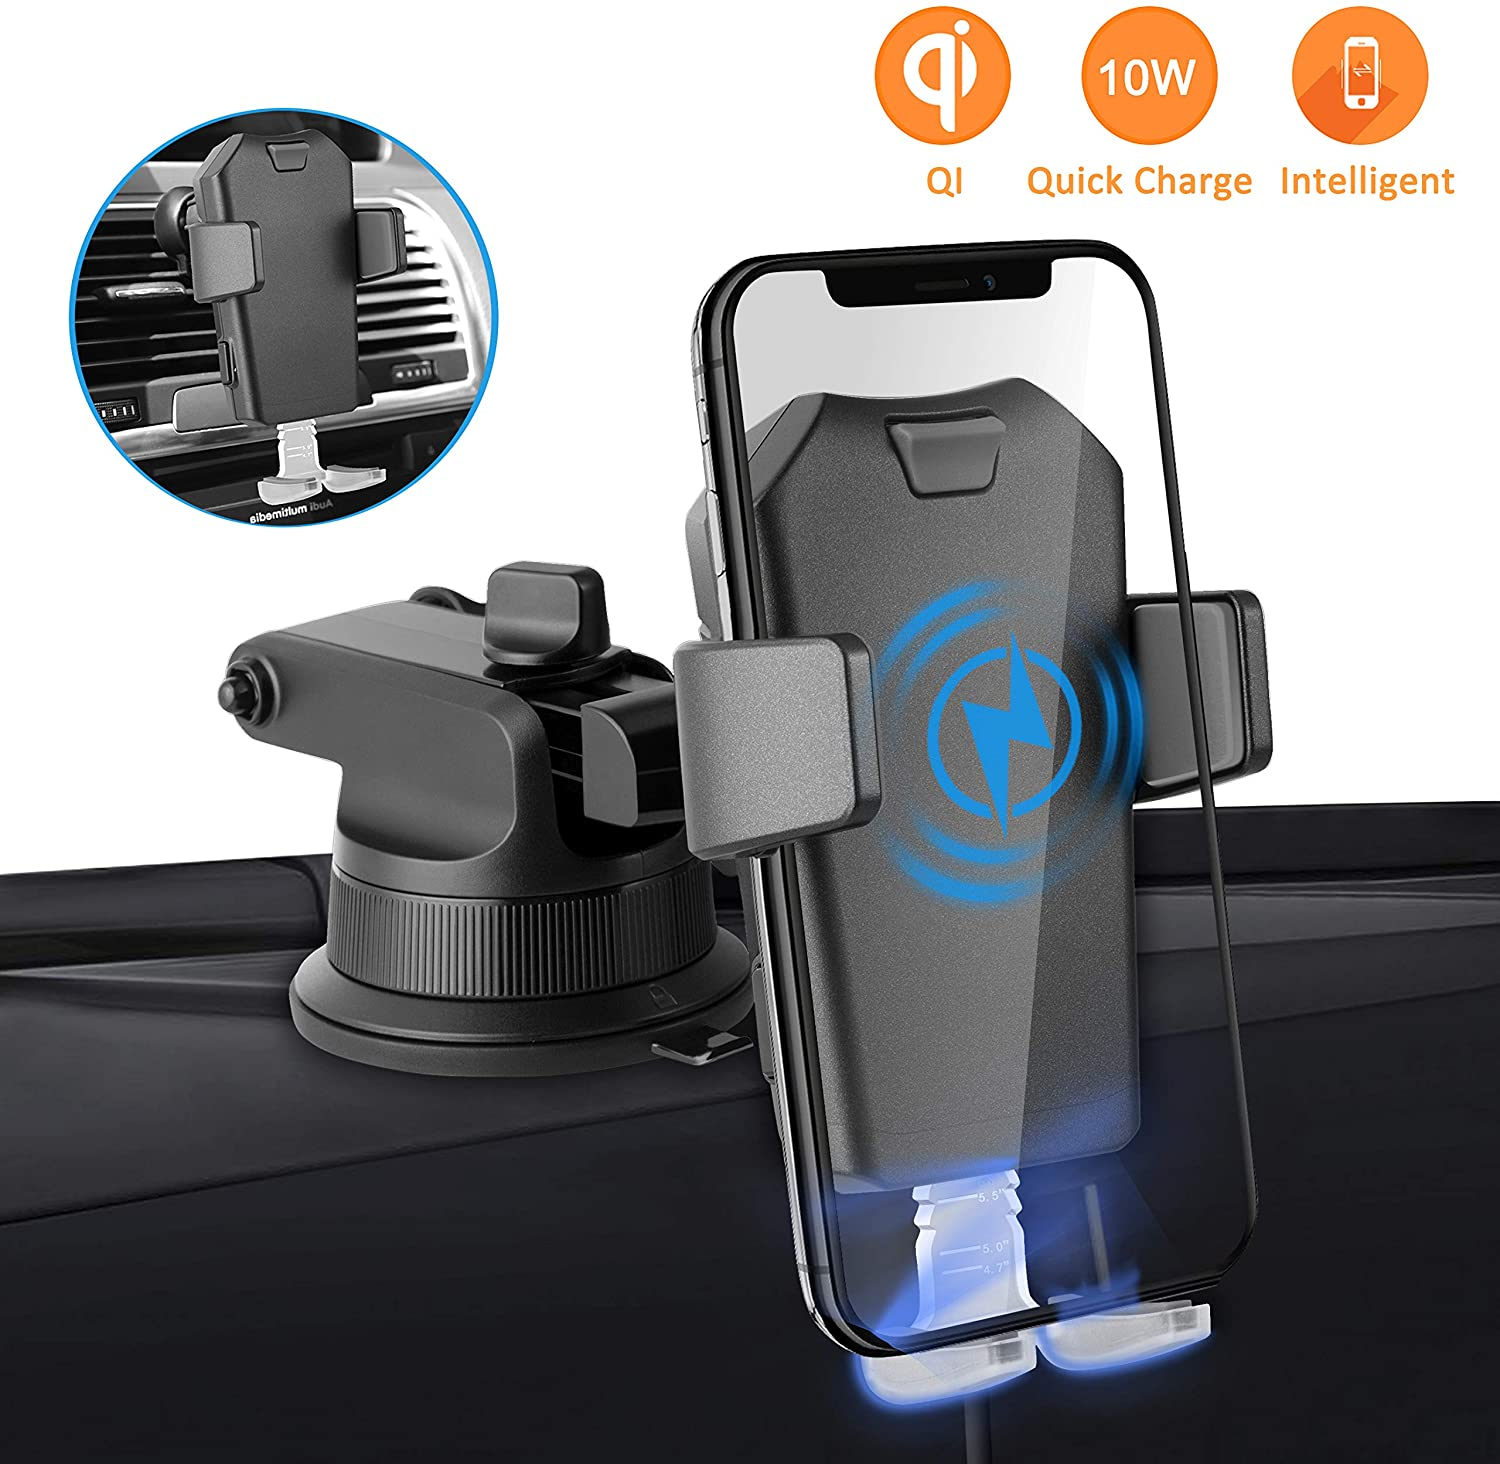 Wireless Car Charger Mount, SendowTek Auto Clamping 10W/7.5W Qi Fast Charging Car Phone Holder Windshield Dashboard Air Vent Car Mount Compatible with Phone Xs/Xs Max/8 Plus/8, Samsung S10+ S10 S9